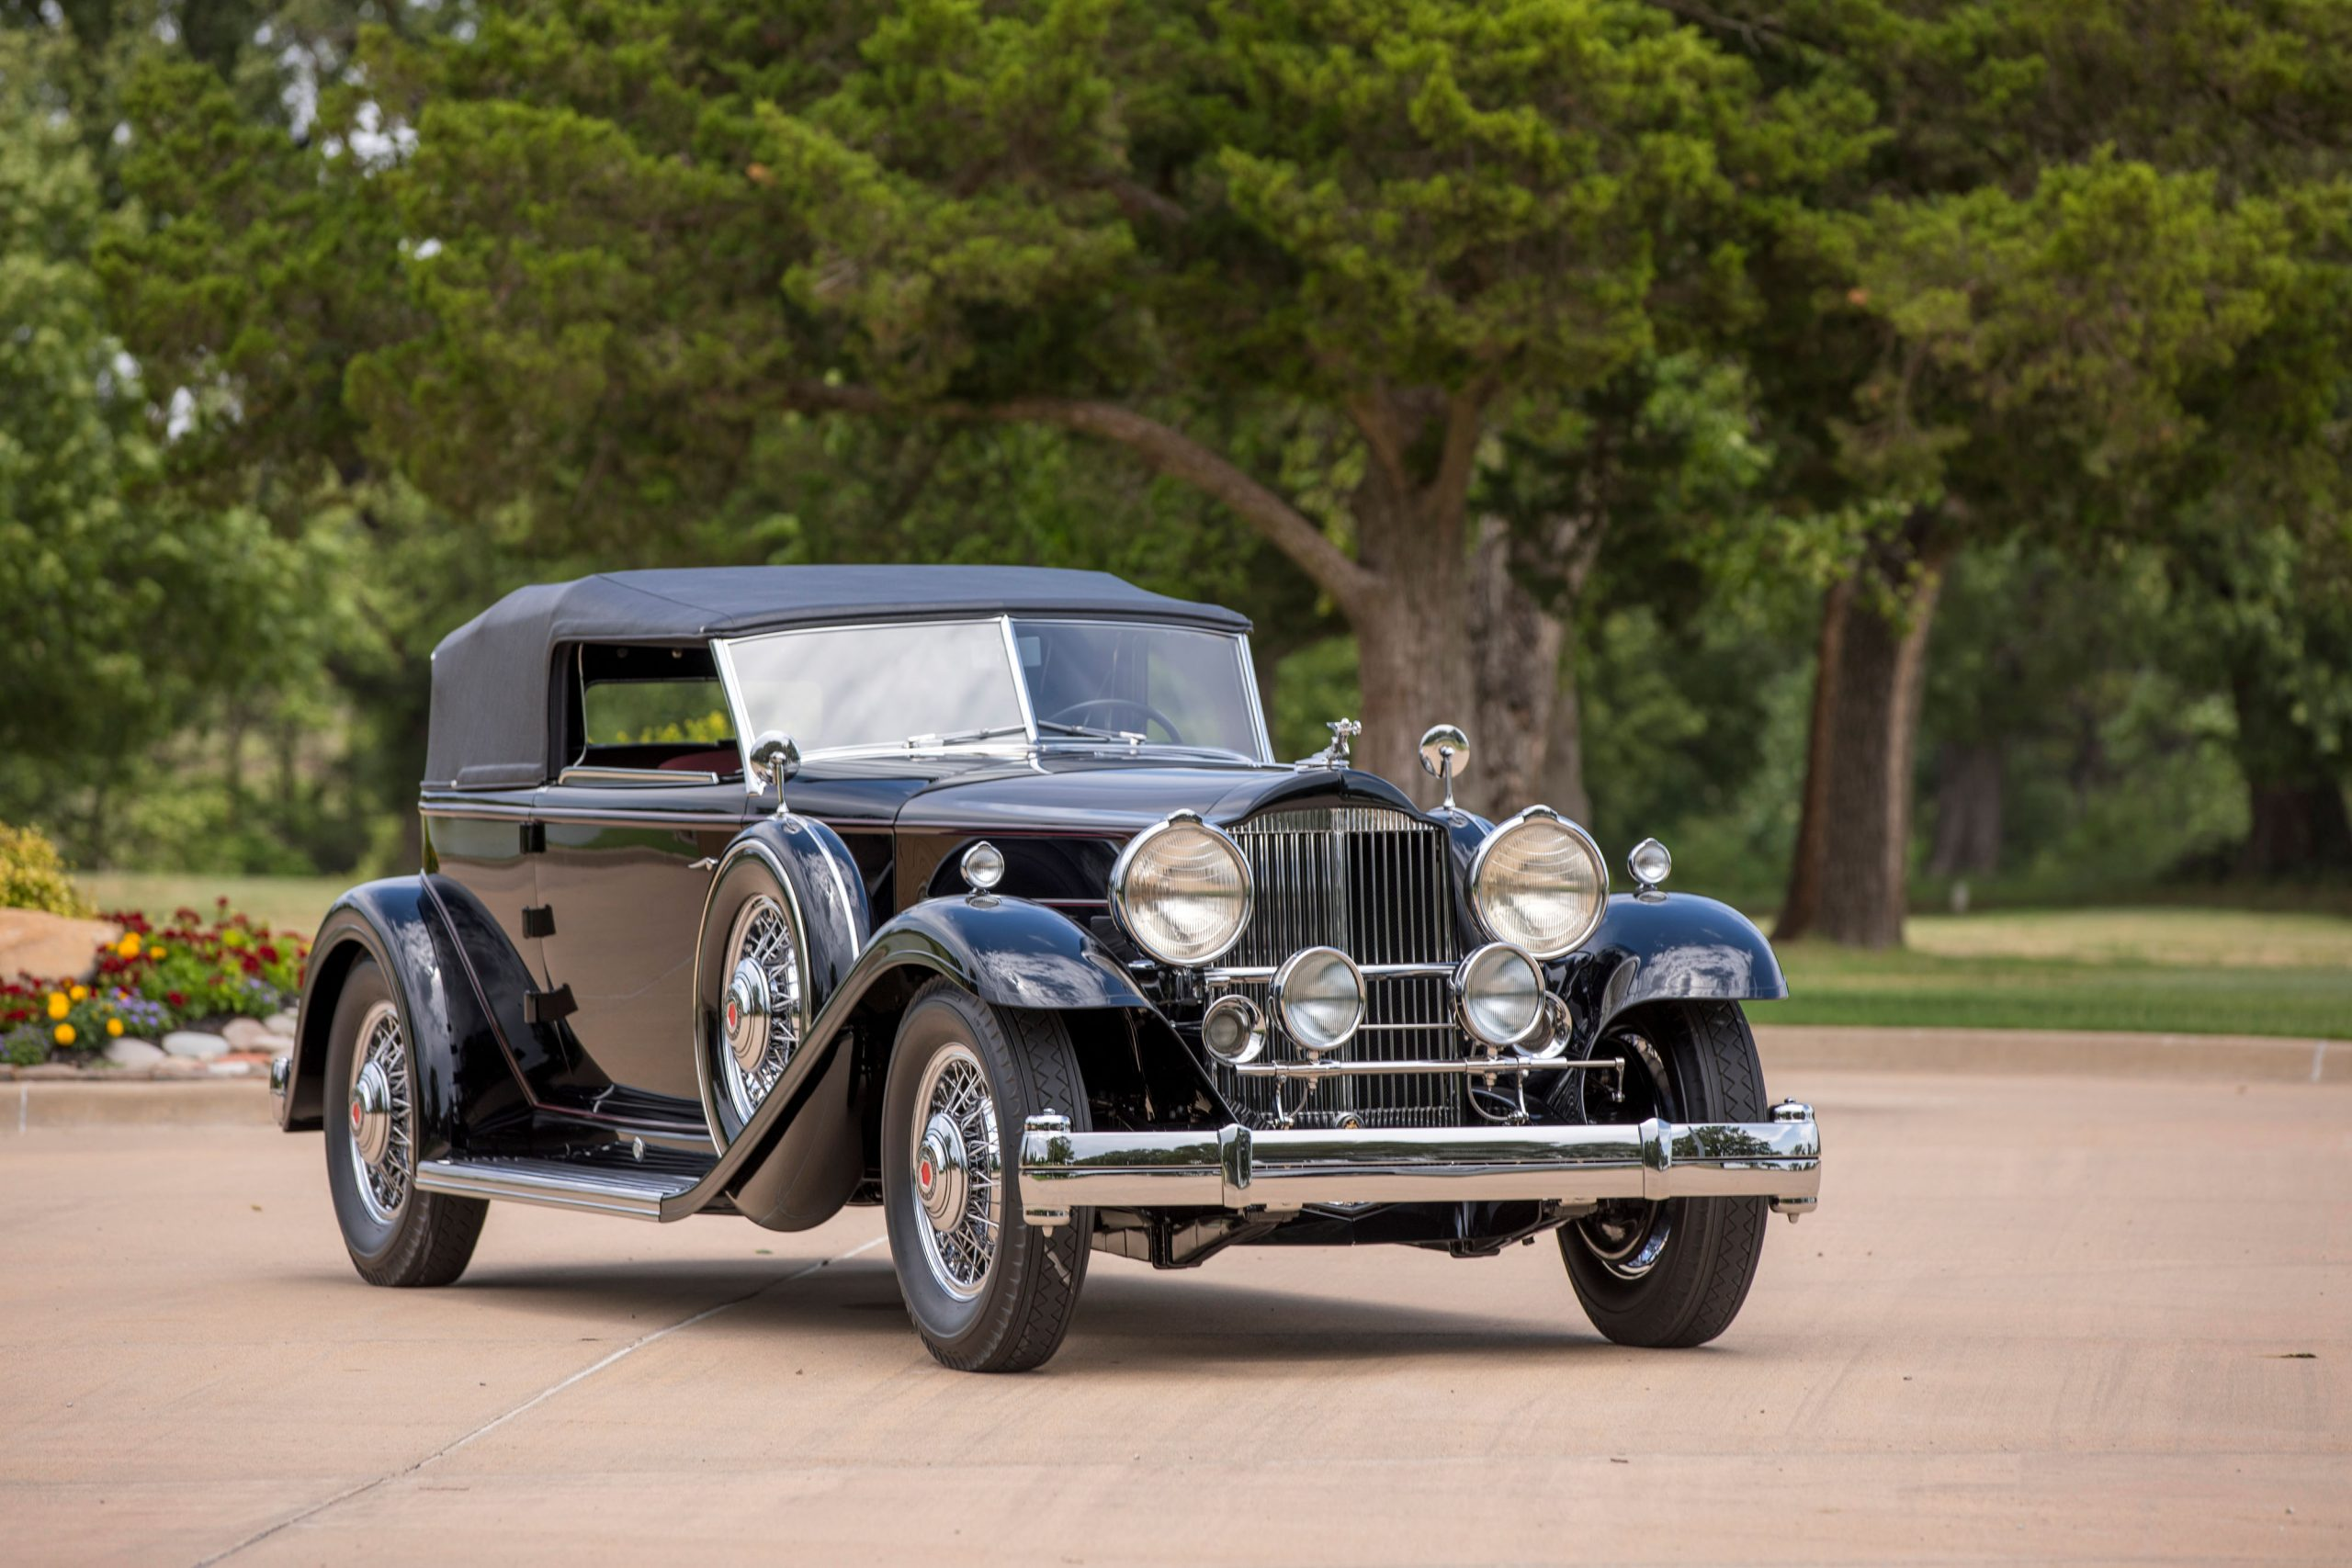 1932-Packard-Deluxe-Eight-Individual-Convertible-Victoria-by-Dietrich front three-quarter